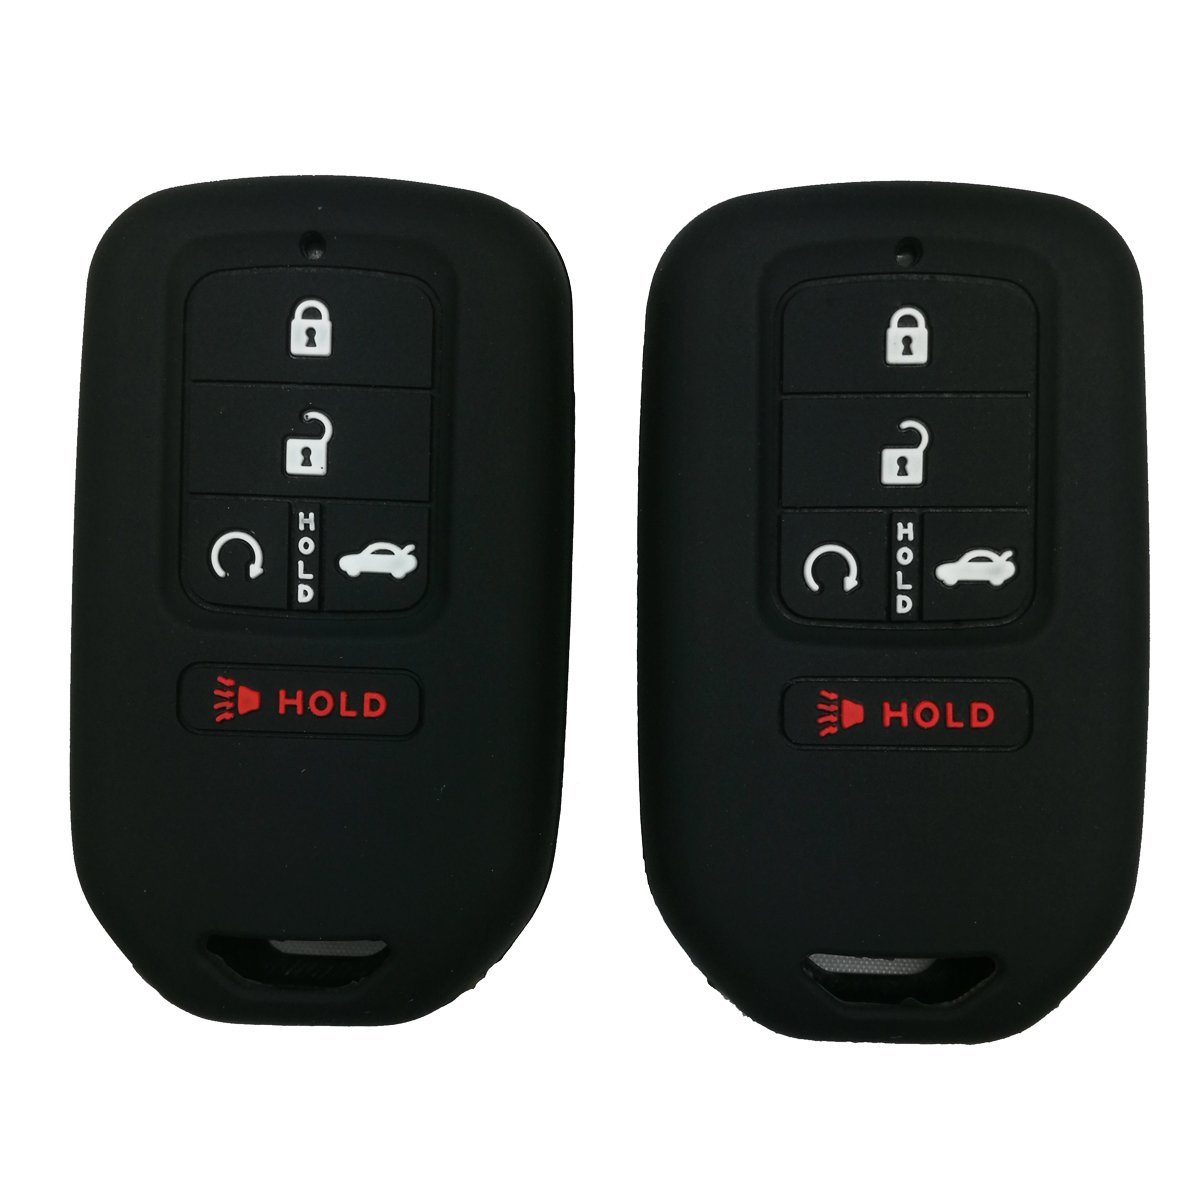 2Pcs Coolbestda Silicone Full Protective Key Fob Remote Cover Case Skin Jacket for A2C81642600 2015 2016 2017 Honda Civic Accord Pilot CR-V 5 Buttons Smart Key Black